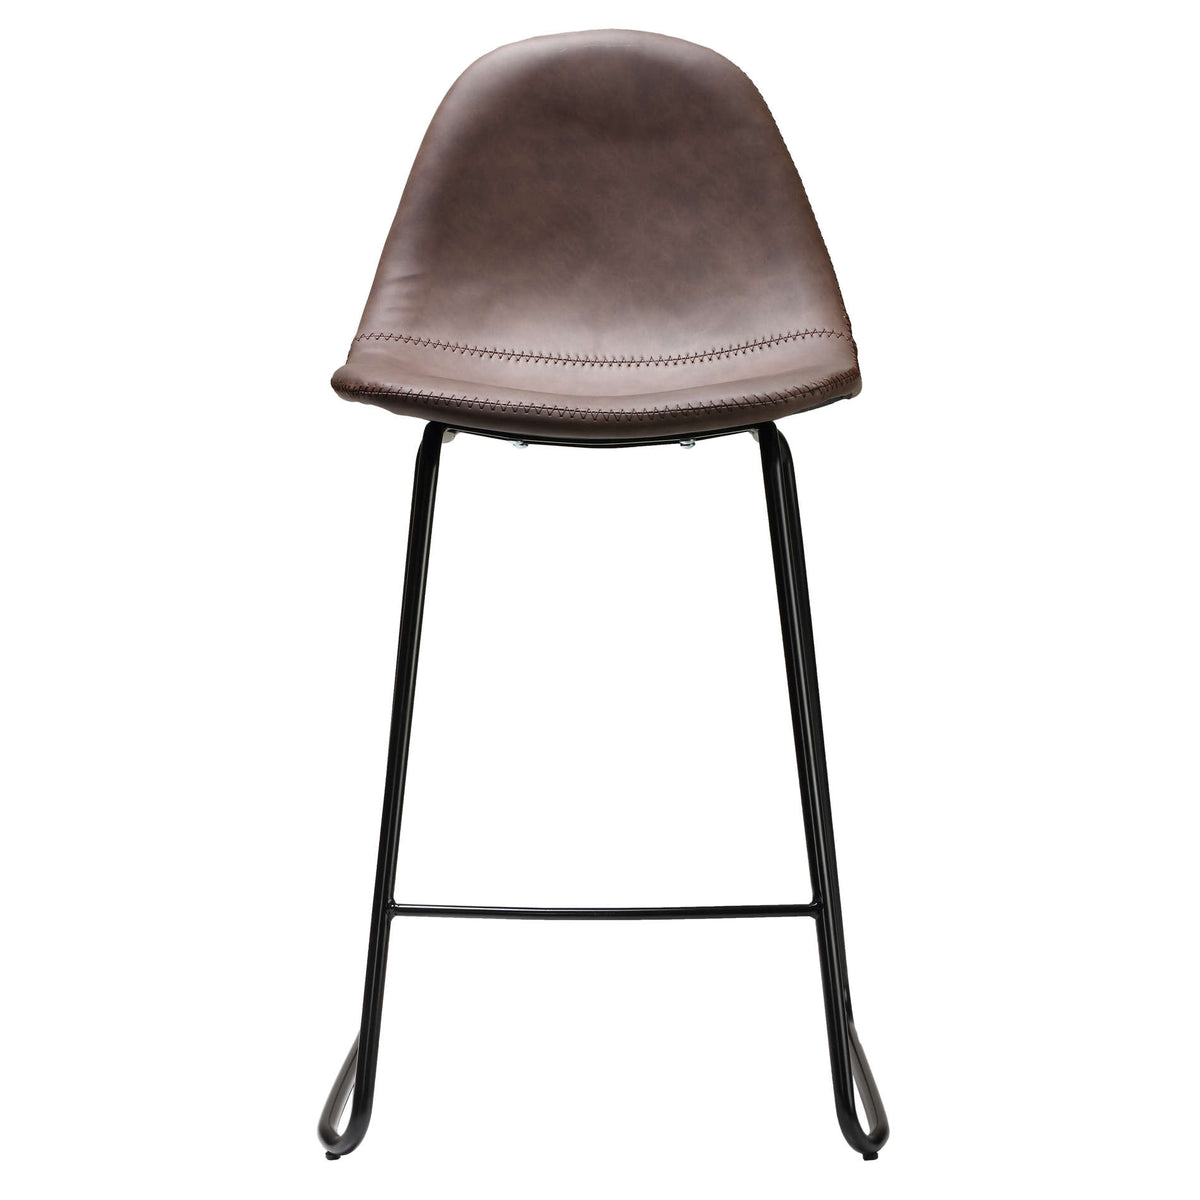 "Cortesi Home Gavin 24"" Counterstool in faux Brown Leather (Set of 2)"